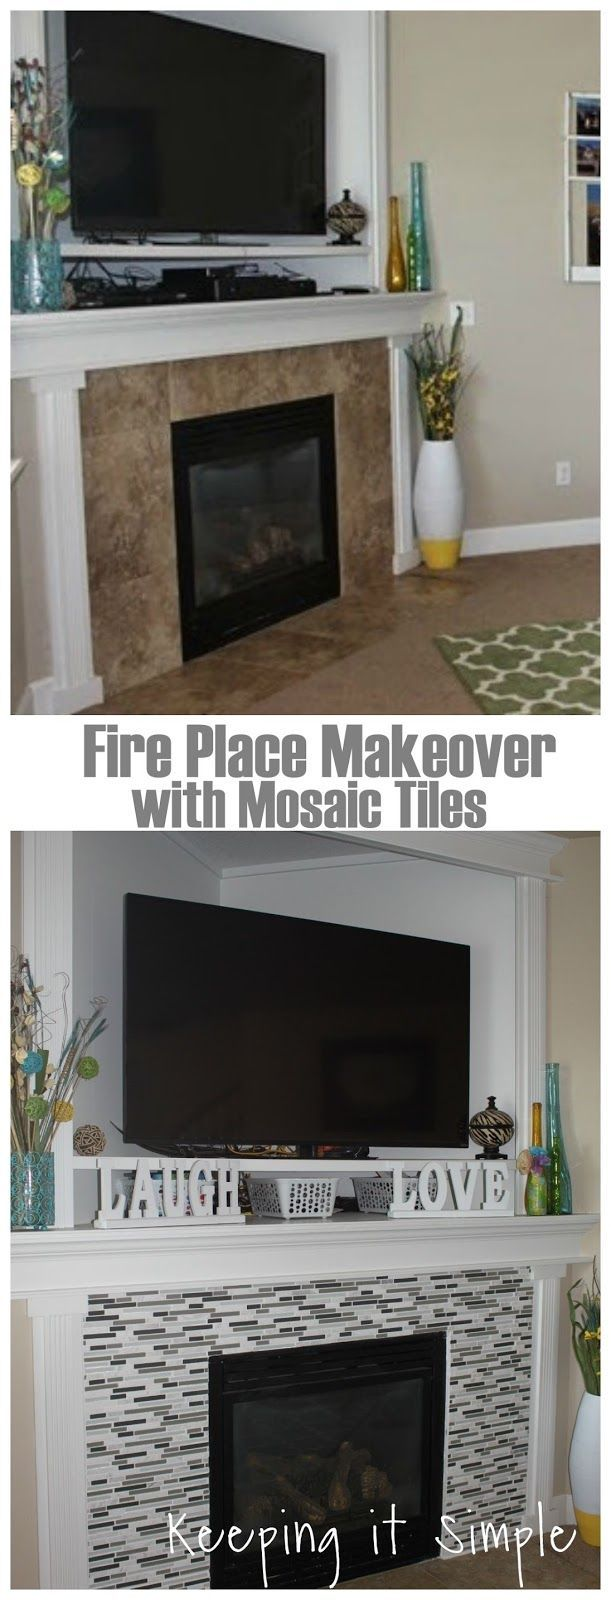 Your home improvements refference mosaic tile fireplace surround - Fireplace Makeover With Mosaic Tiles Fireplace Keepingitsimple